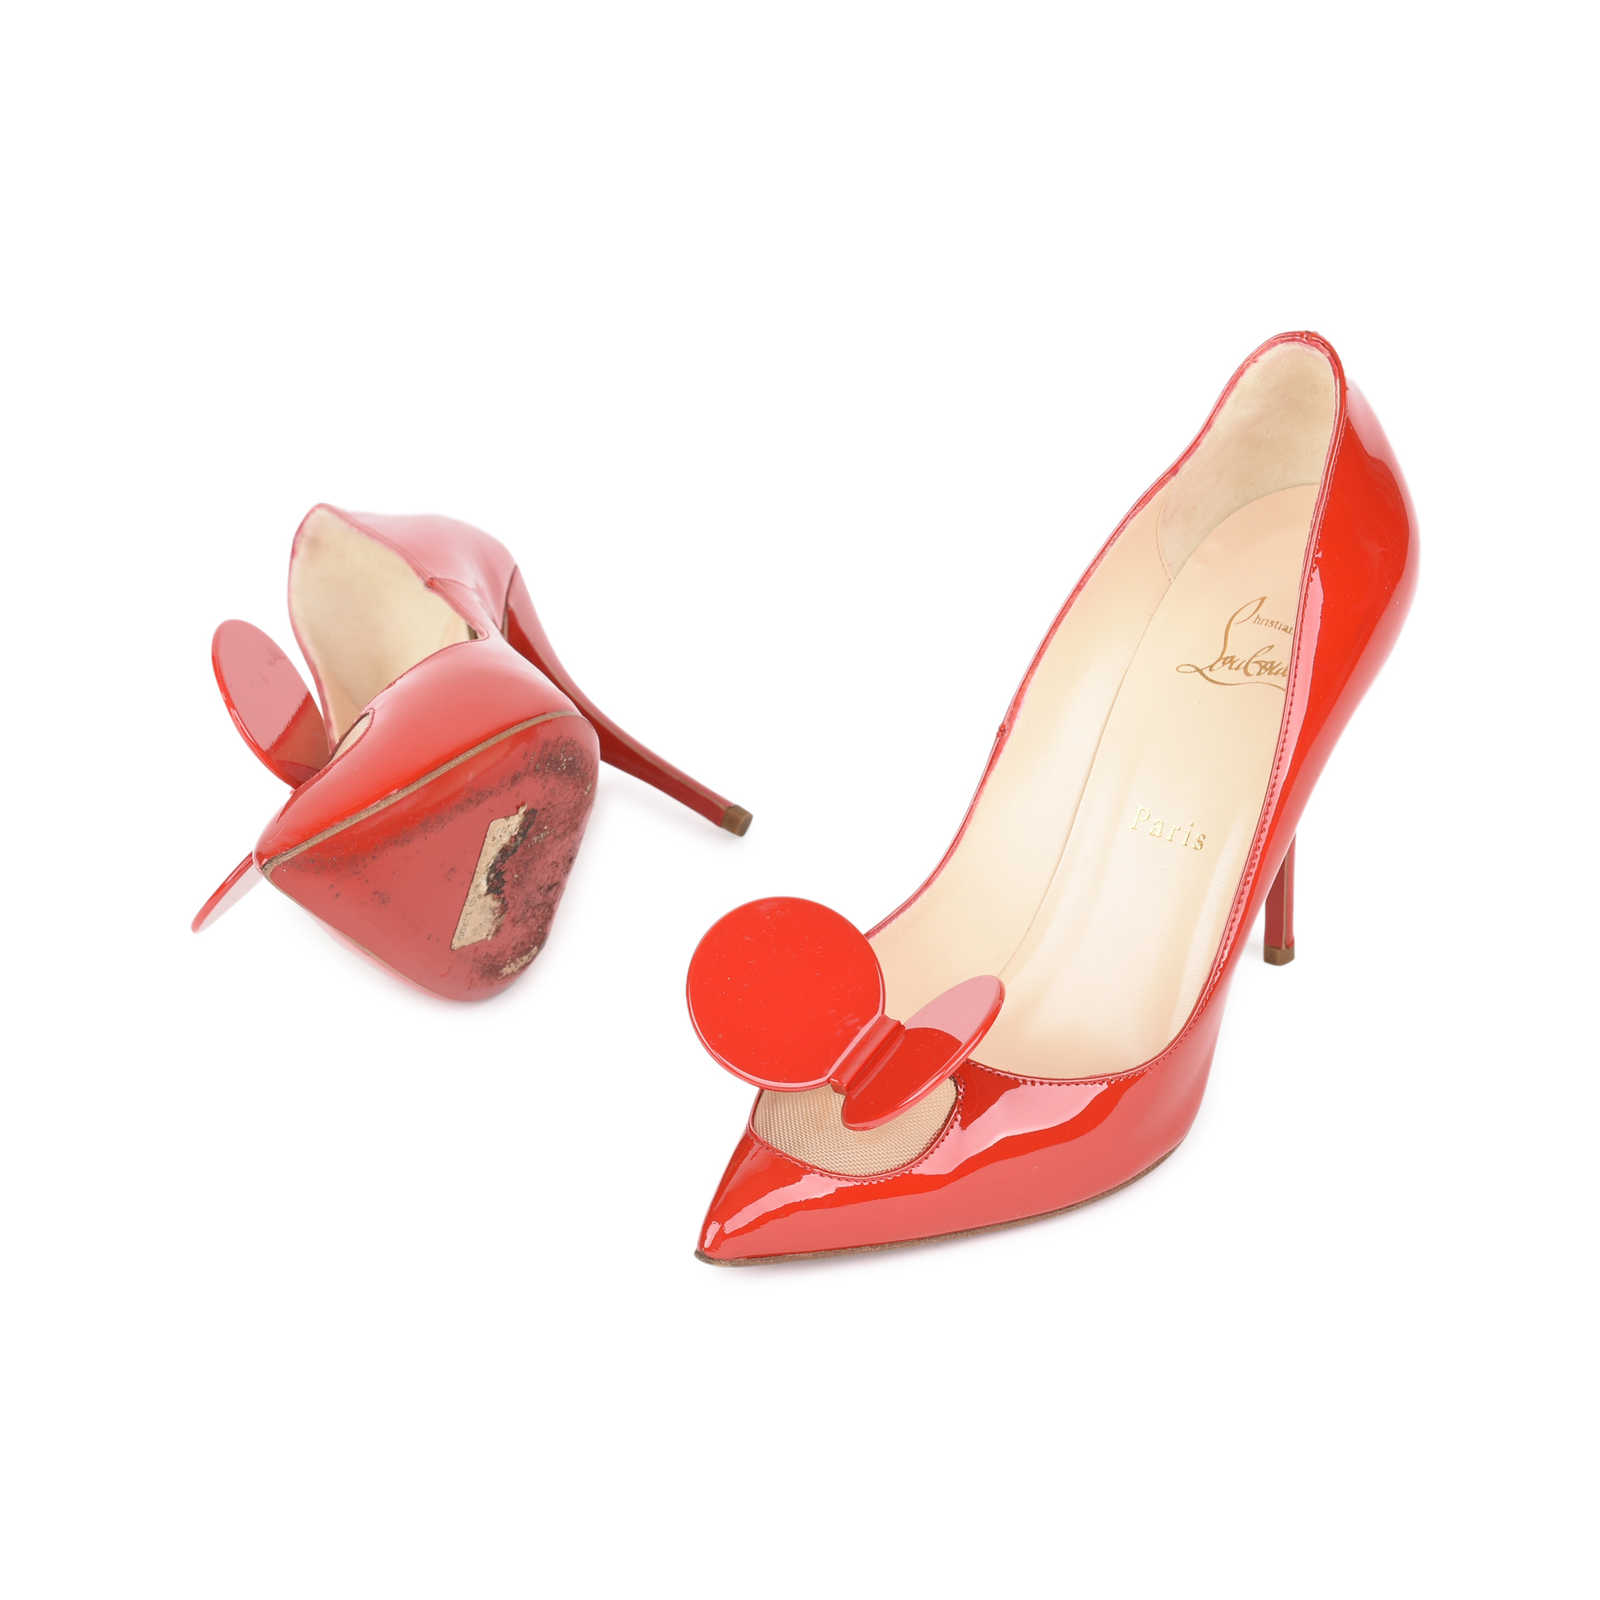 99af592d9dd0 ... Authentic Second Hand Christian Louboutin Madame Mouse Pumps  (PSS-532-00005) ...